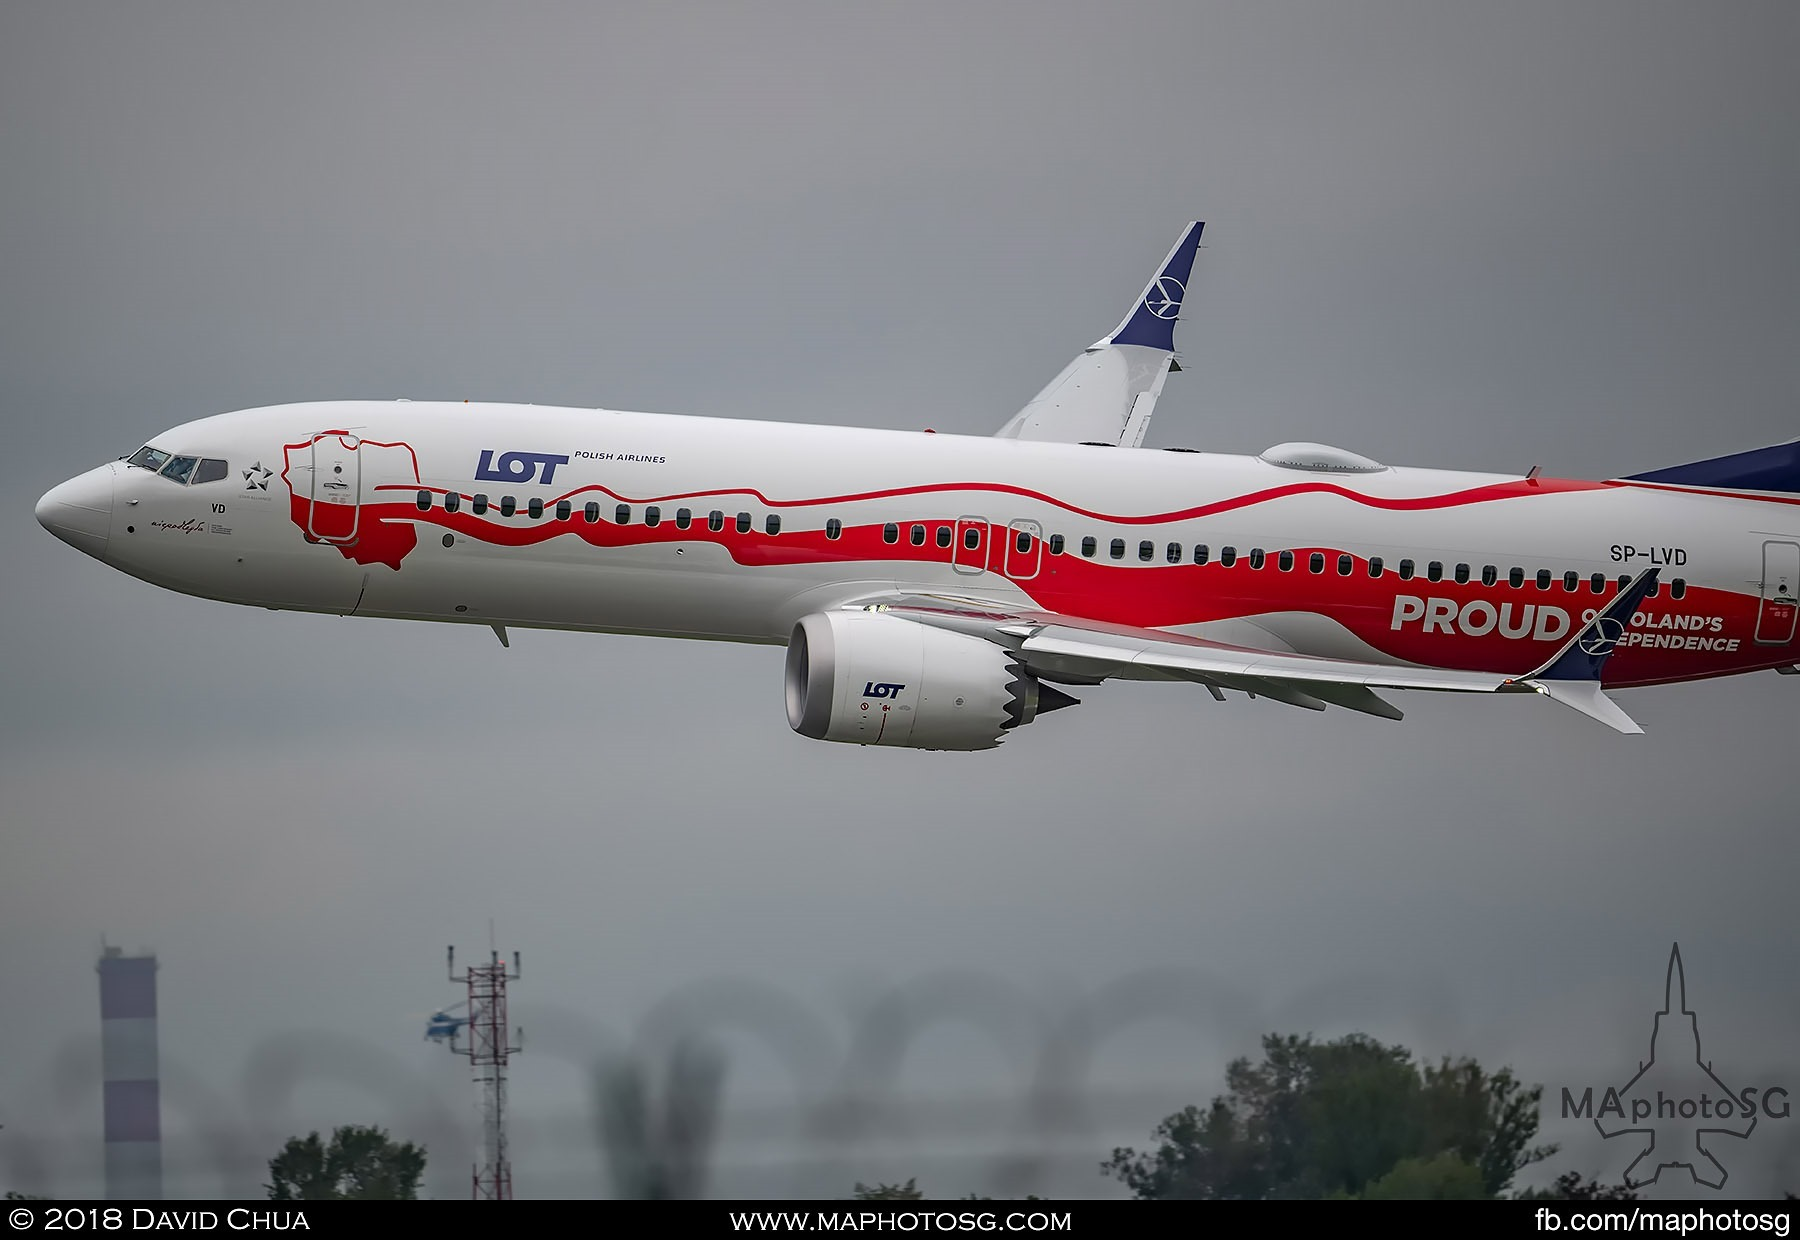 LOT Polish Airlines Boeing 737 Max with Proud of Poland's Independence livery